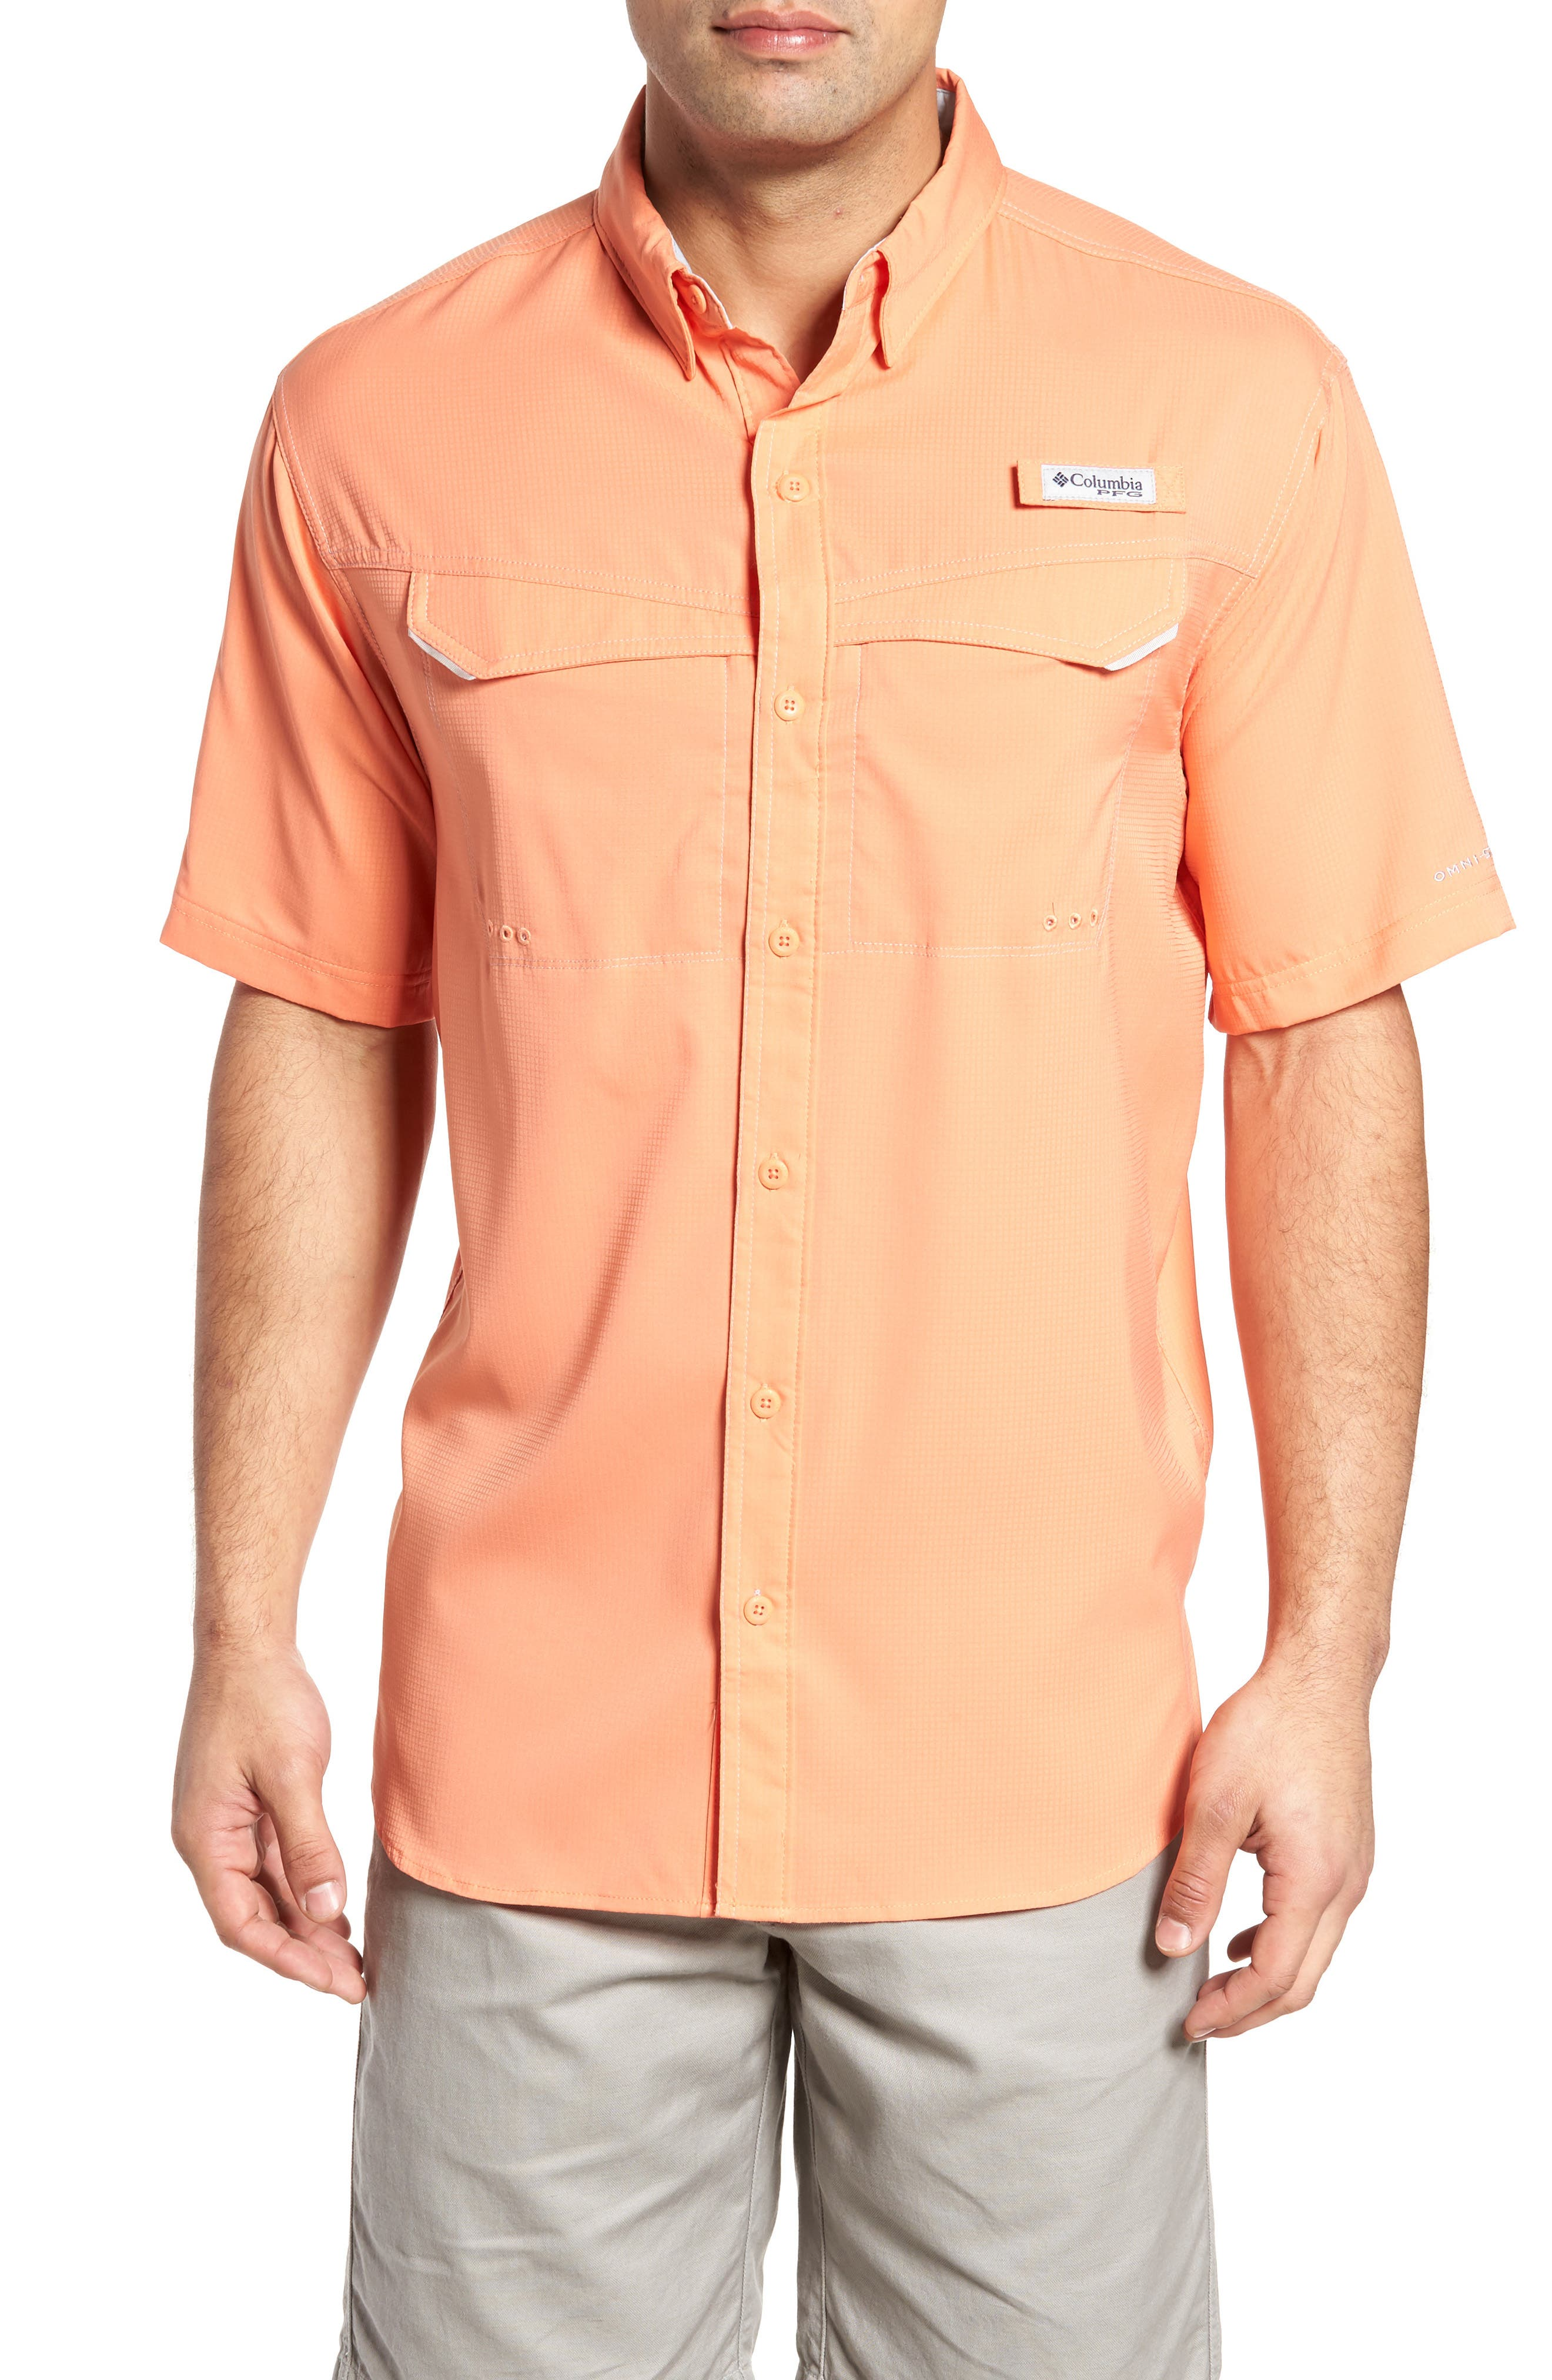 Main Image - Columbia PFG Low Drag Offshore Woven Shirt